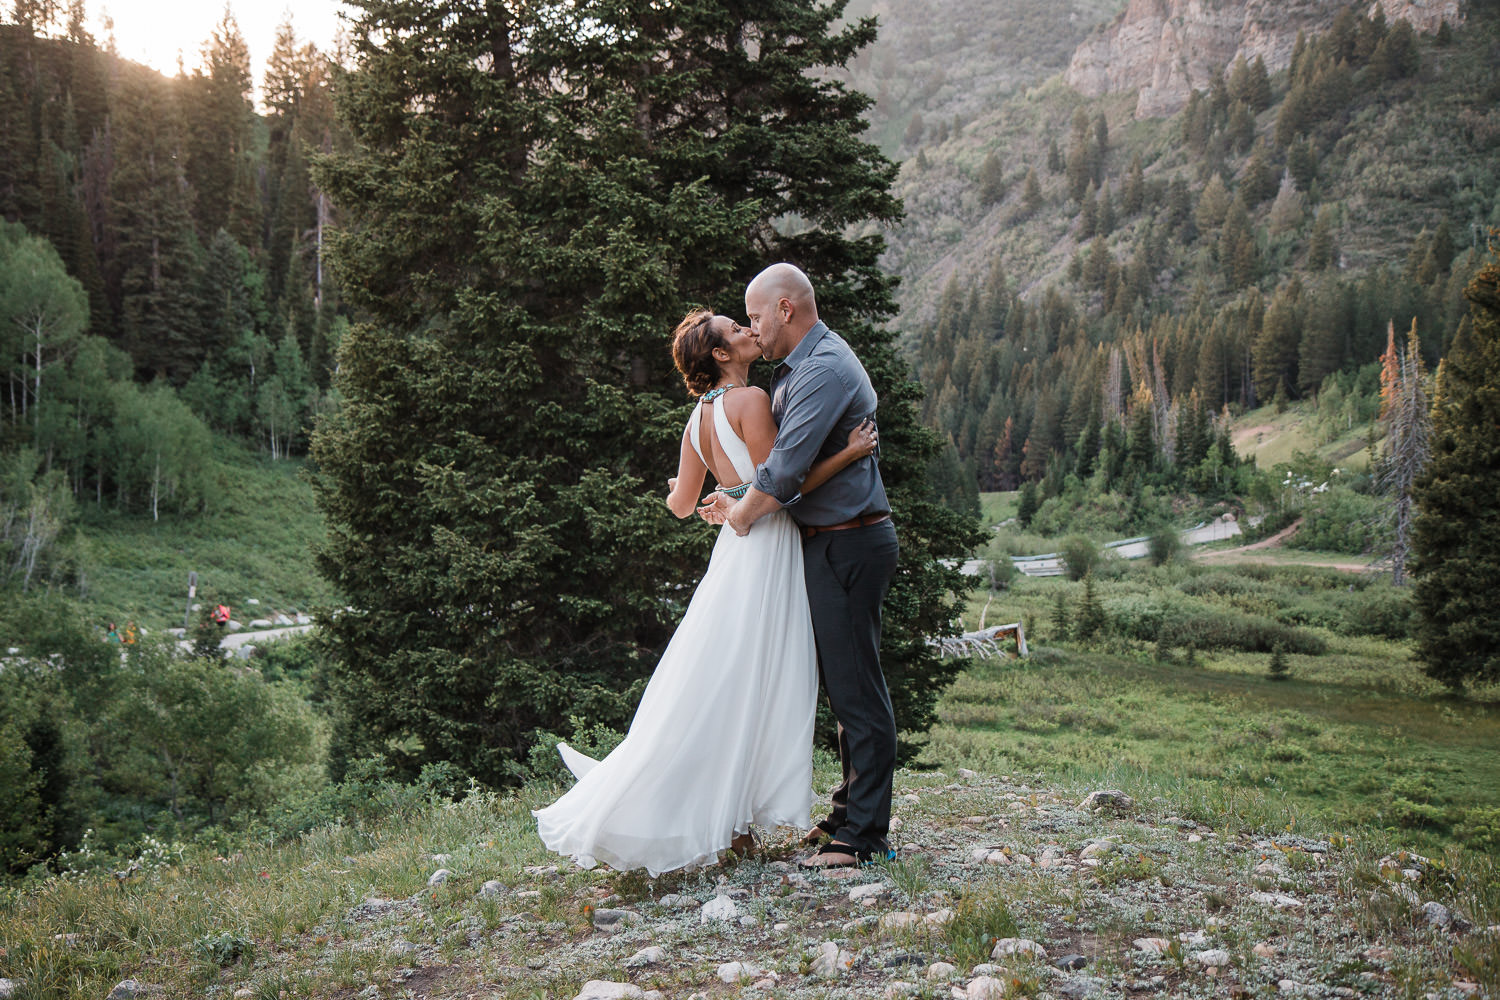 Flowy white dress from Bling it on Dress Rentals Utah county Photographers